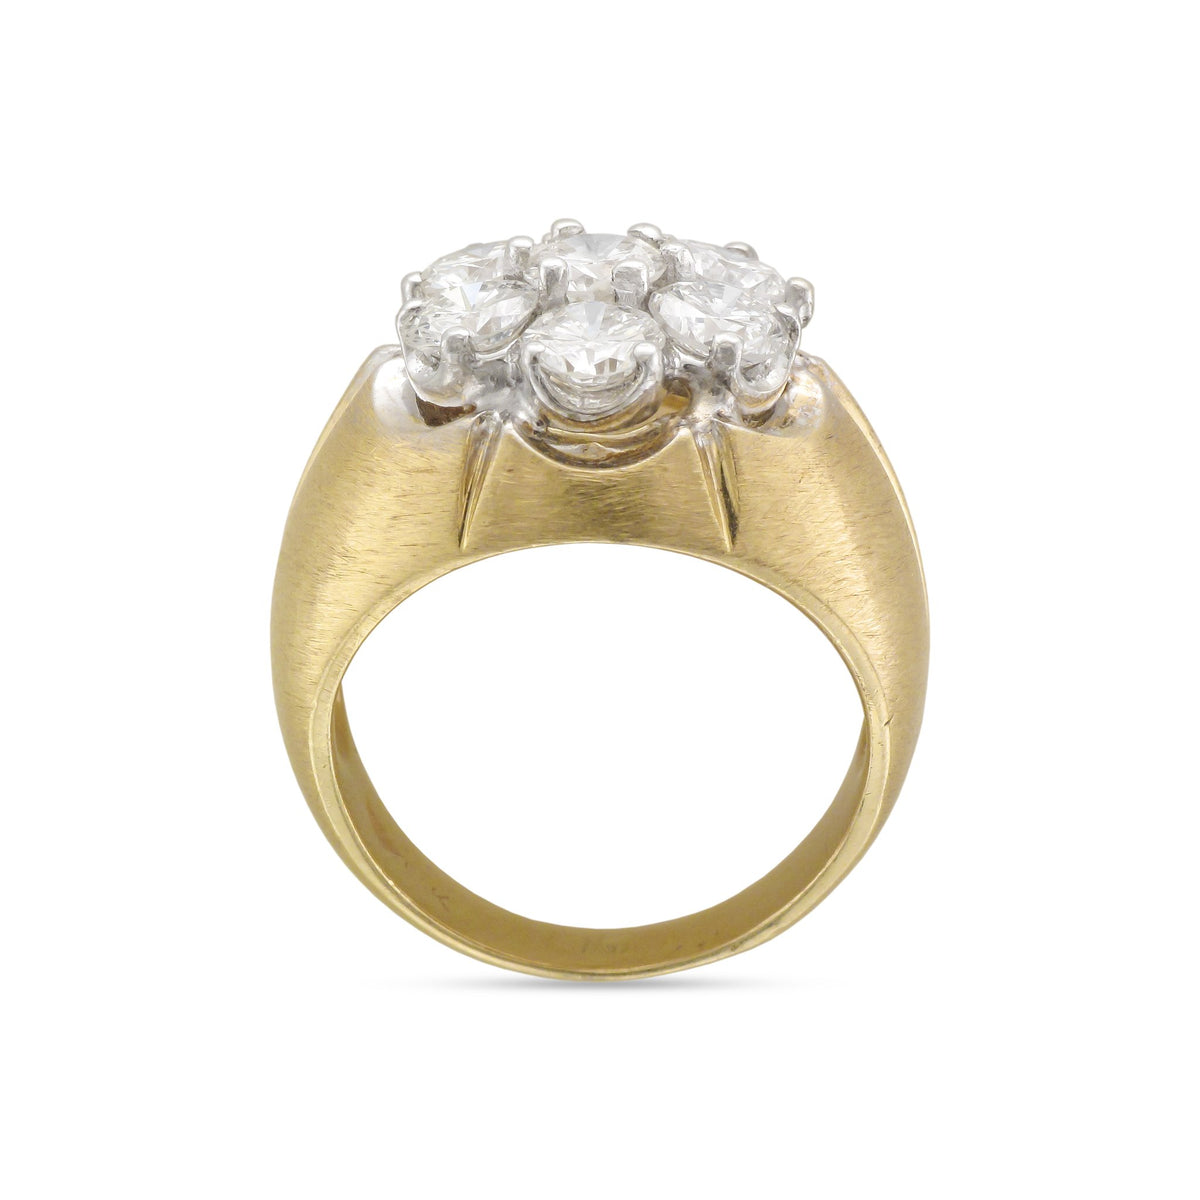 Vintage 18ct Yellow Gold Diamond Cluster Ring